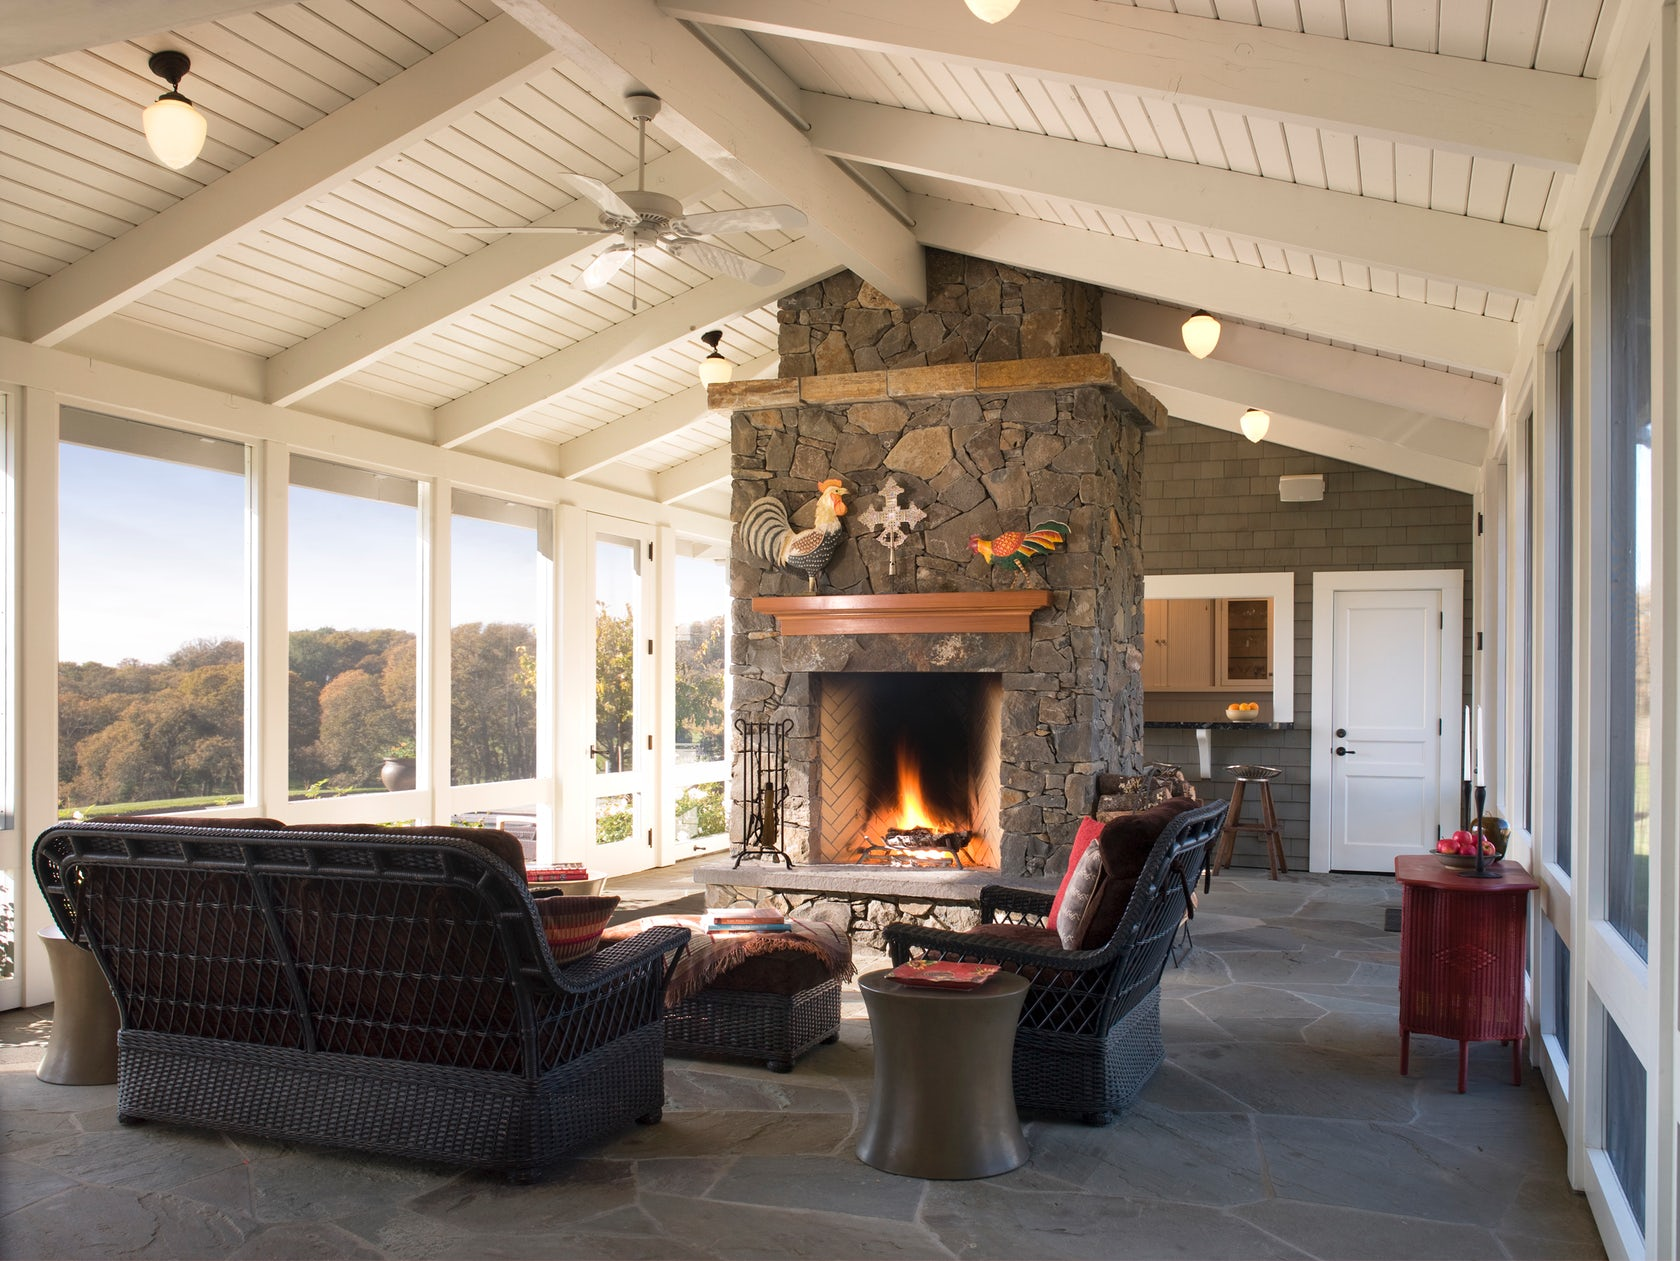 sp8 Great ideas for screened porches that can inspire you